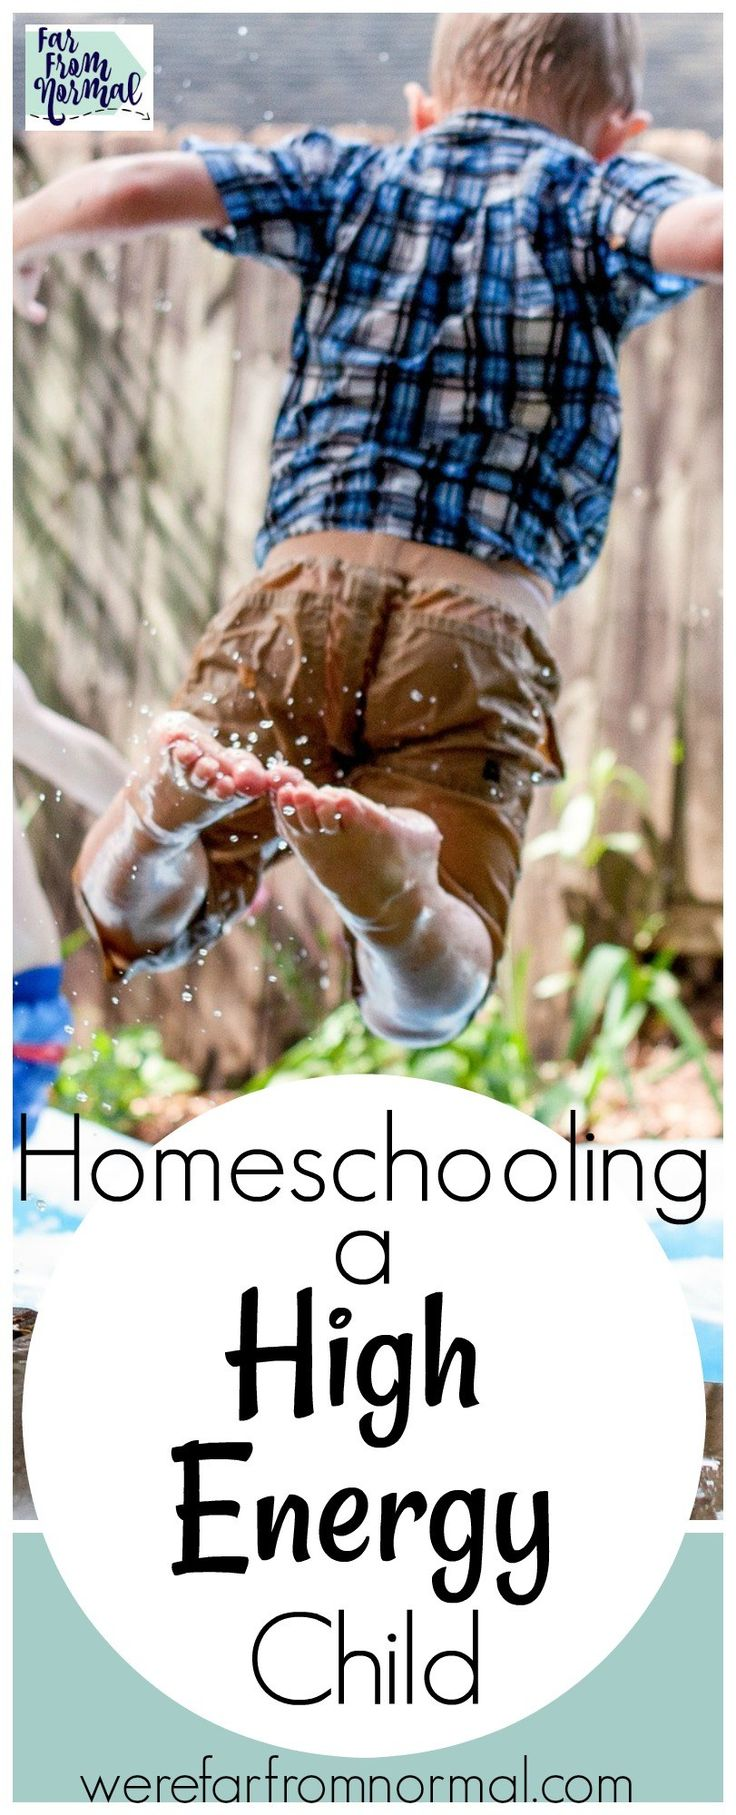 Homeschooling a High Energy Child | Far From Normal